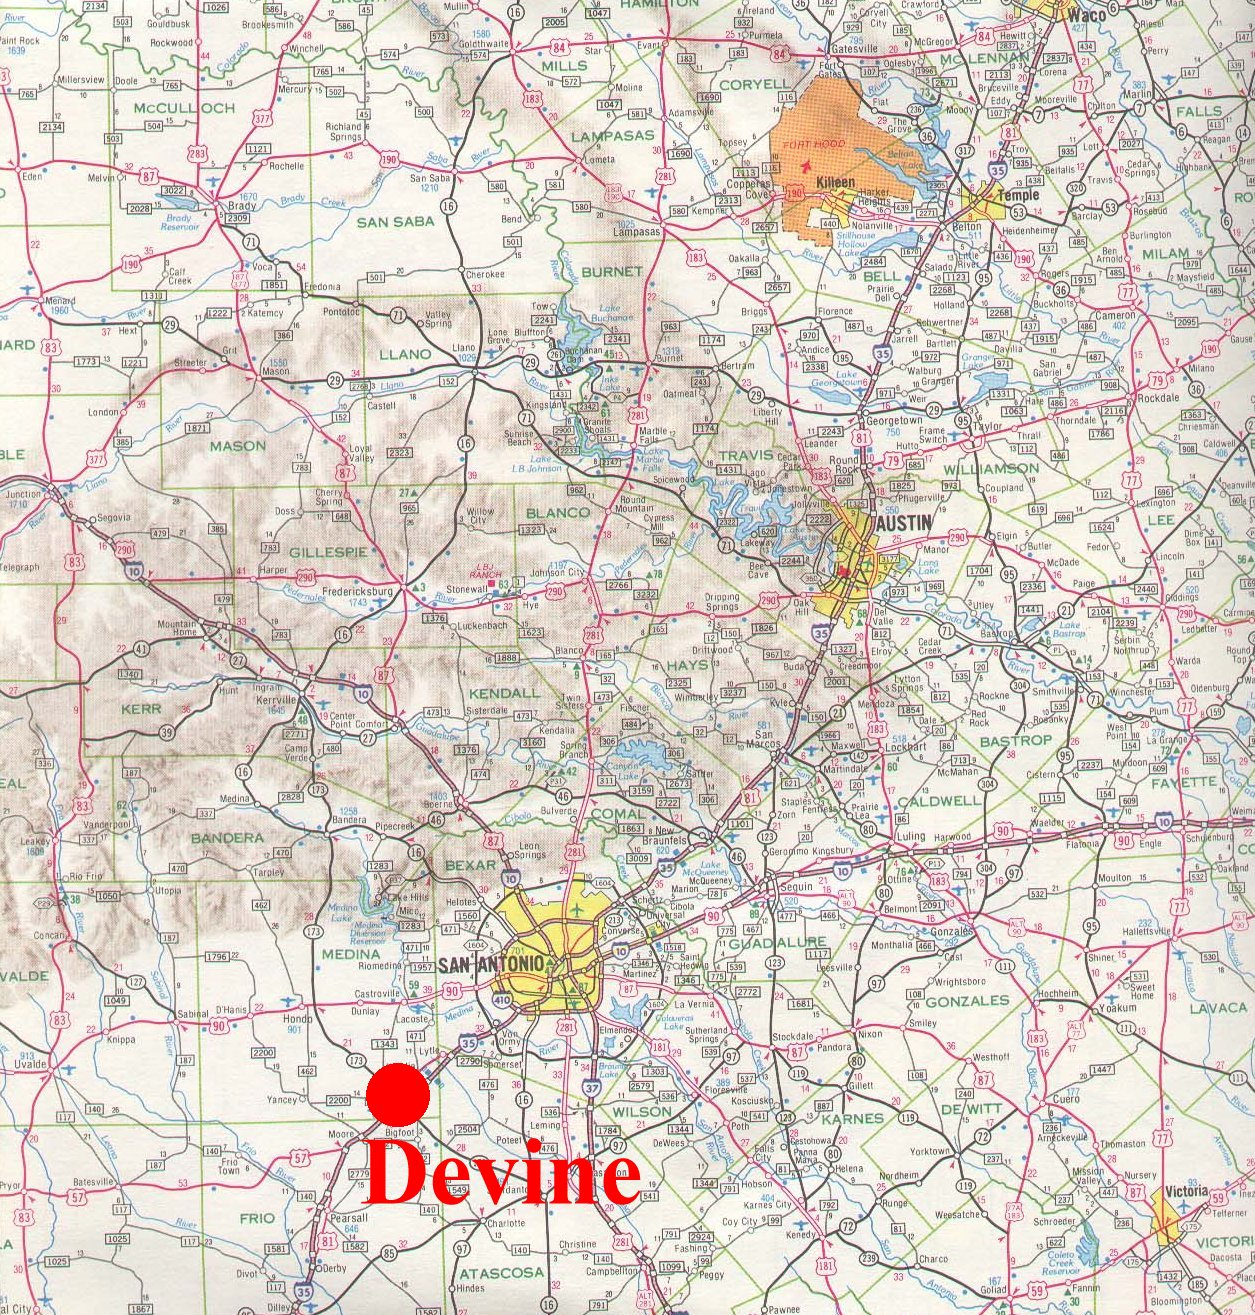 Devine Small Town Research Project